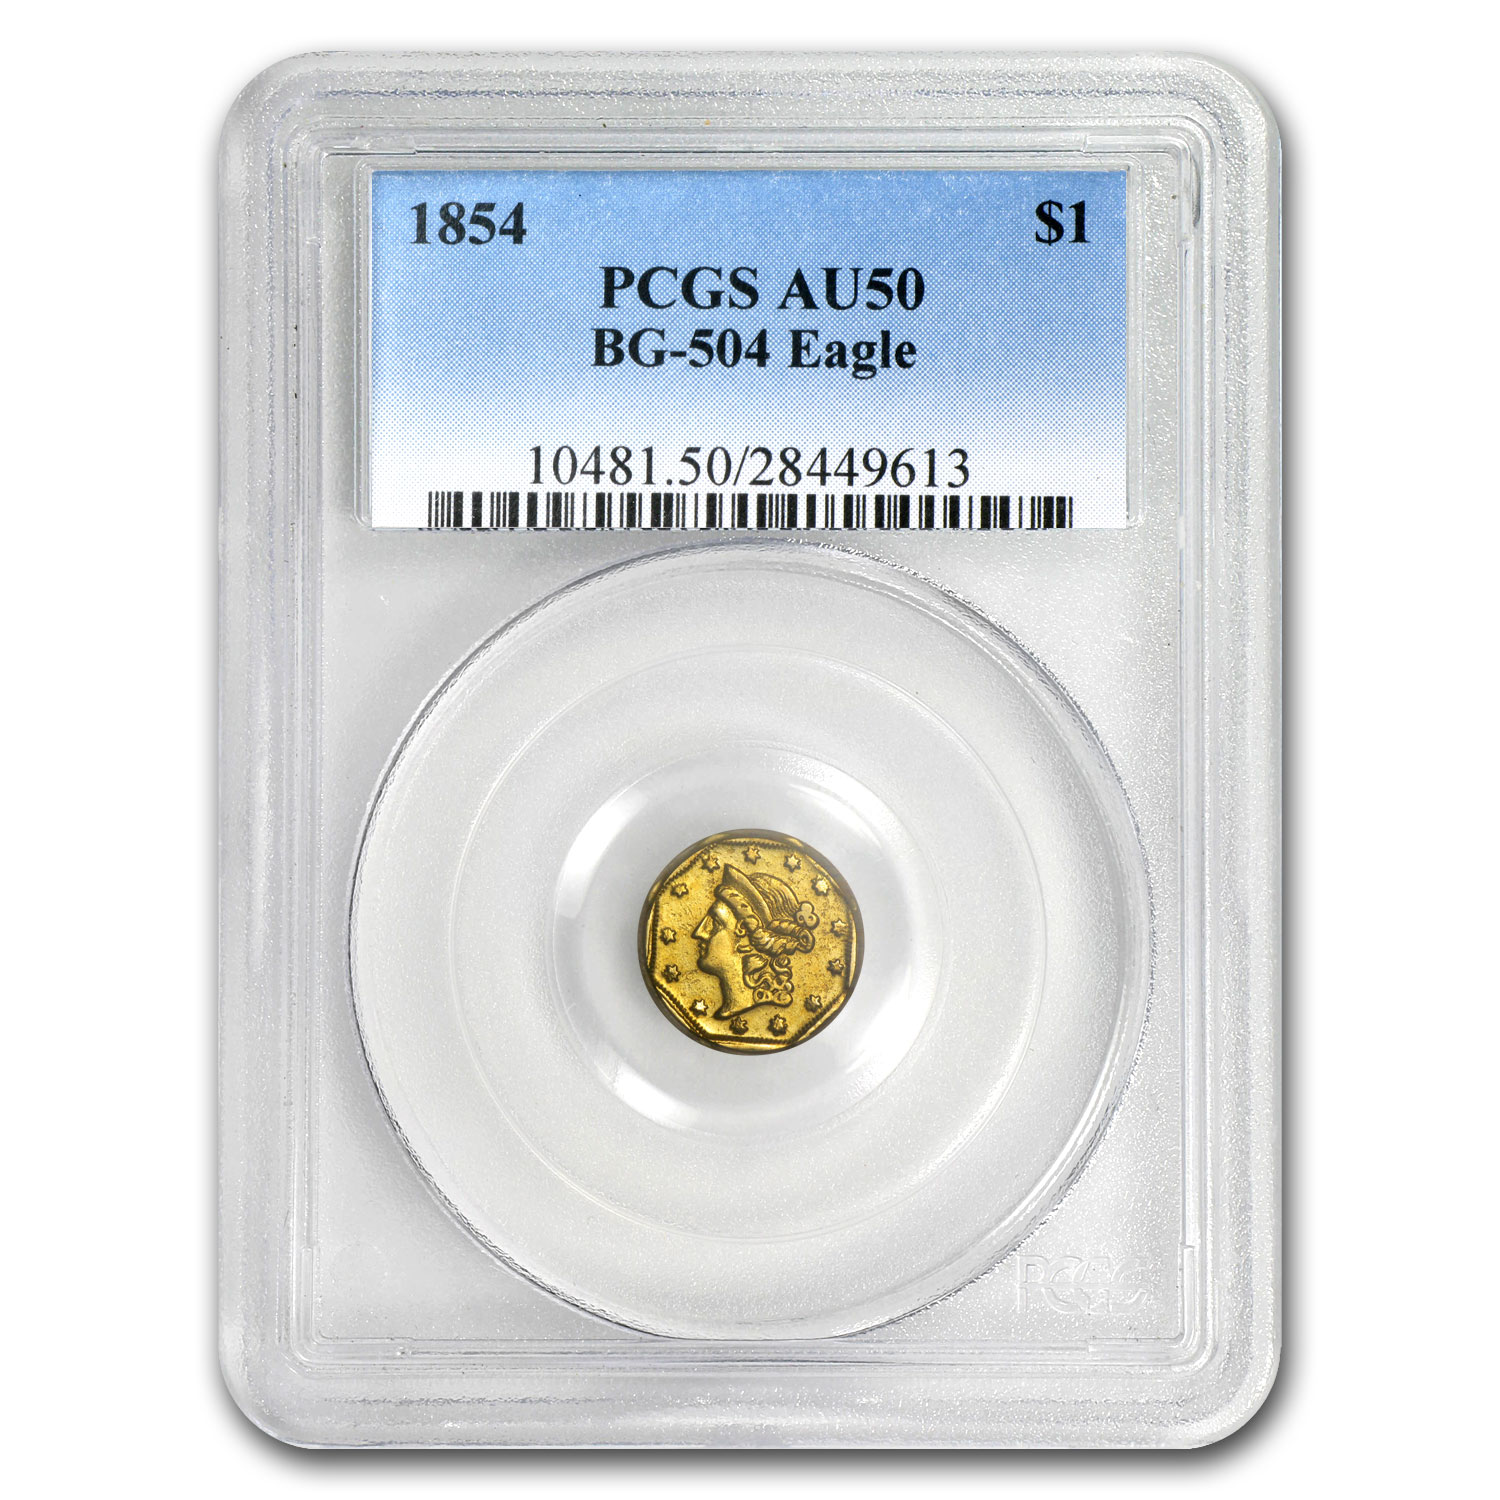 1854 BG-504 Liberty Octagonal One Dollar Gold AU-50 PCGS - Eagle